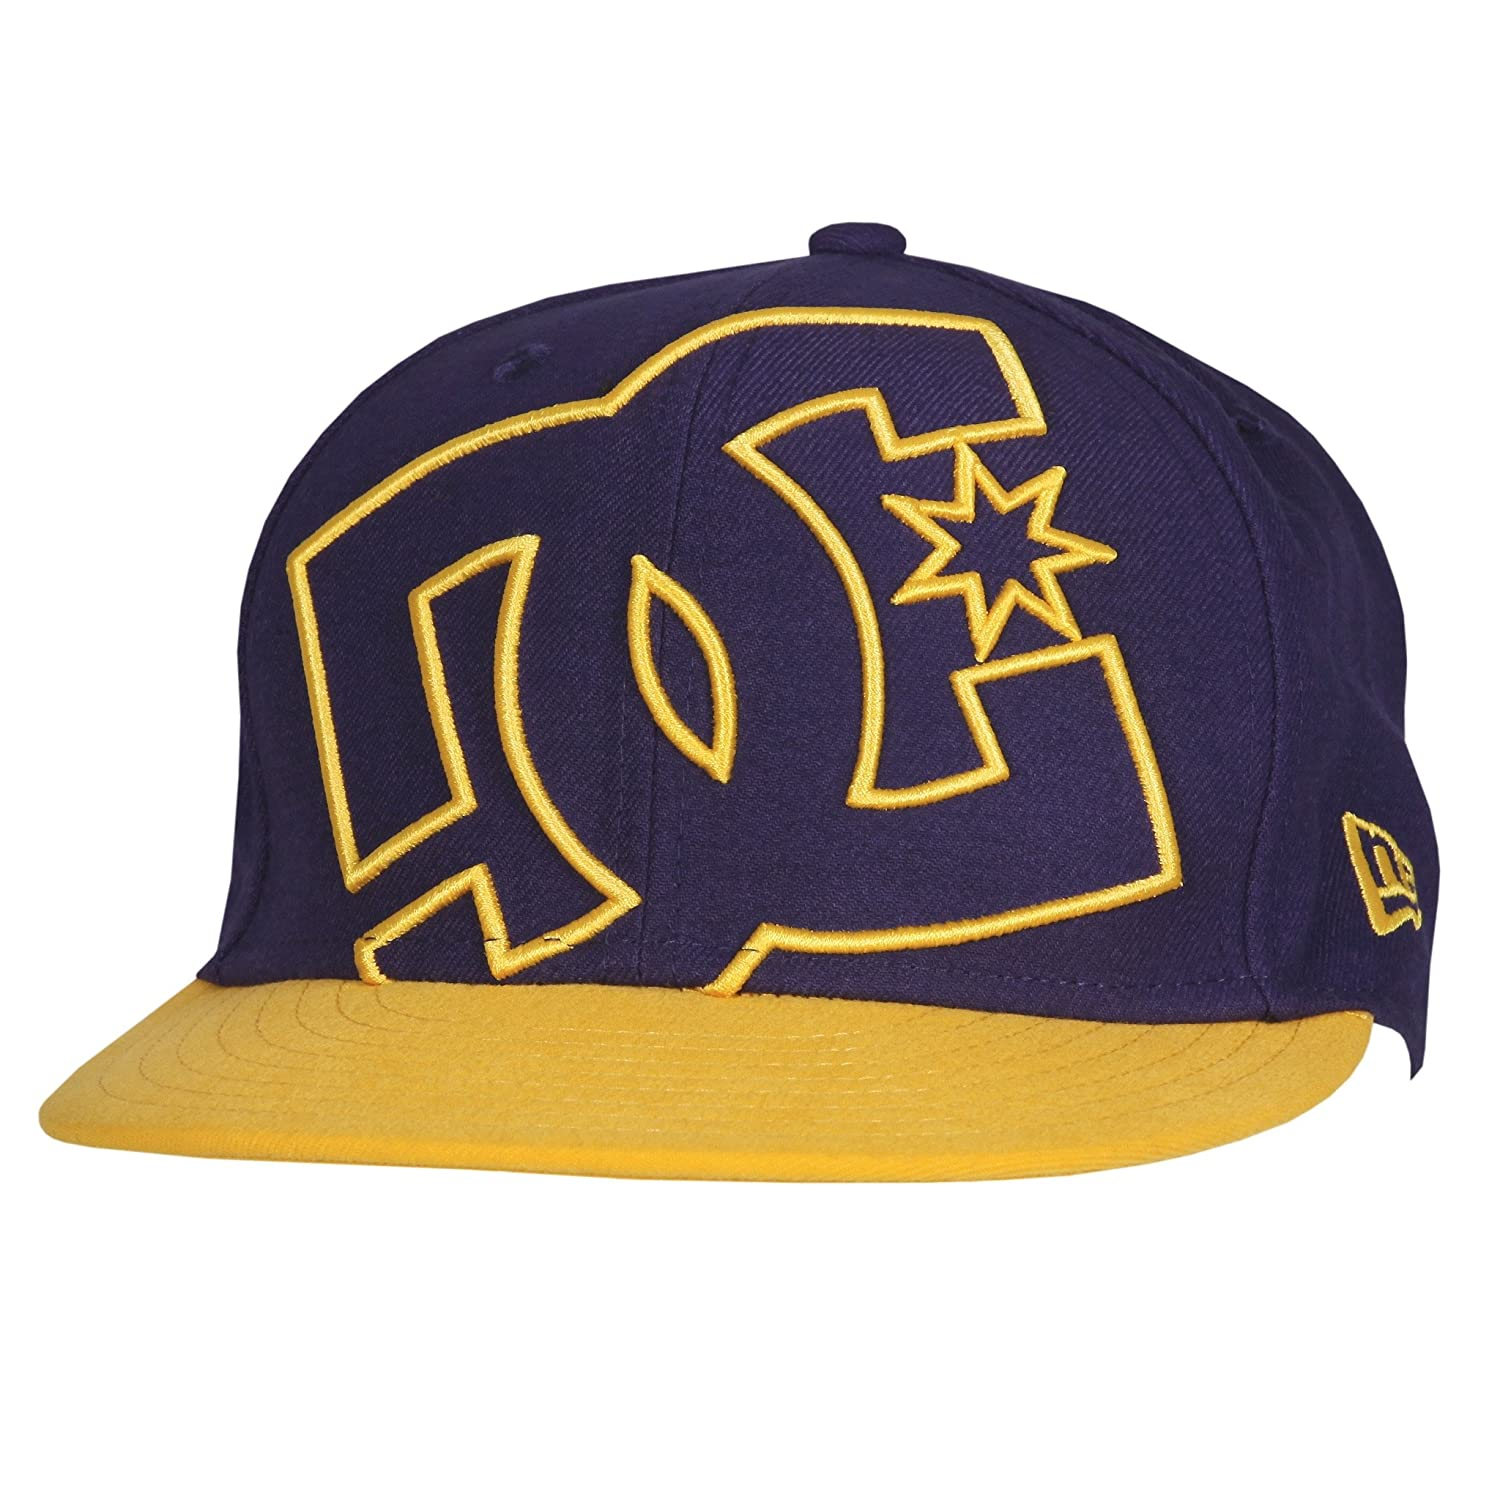 Amazon.com  DC Shoes Mens Shoes Coverage - Hat - Men - 7 1 - Yellow  Heliotrope Yellow 7 1 8  Clothing 091ae3094b06